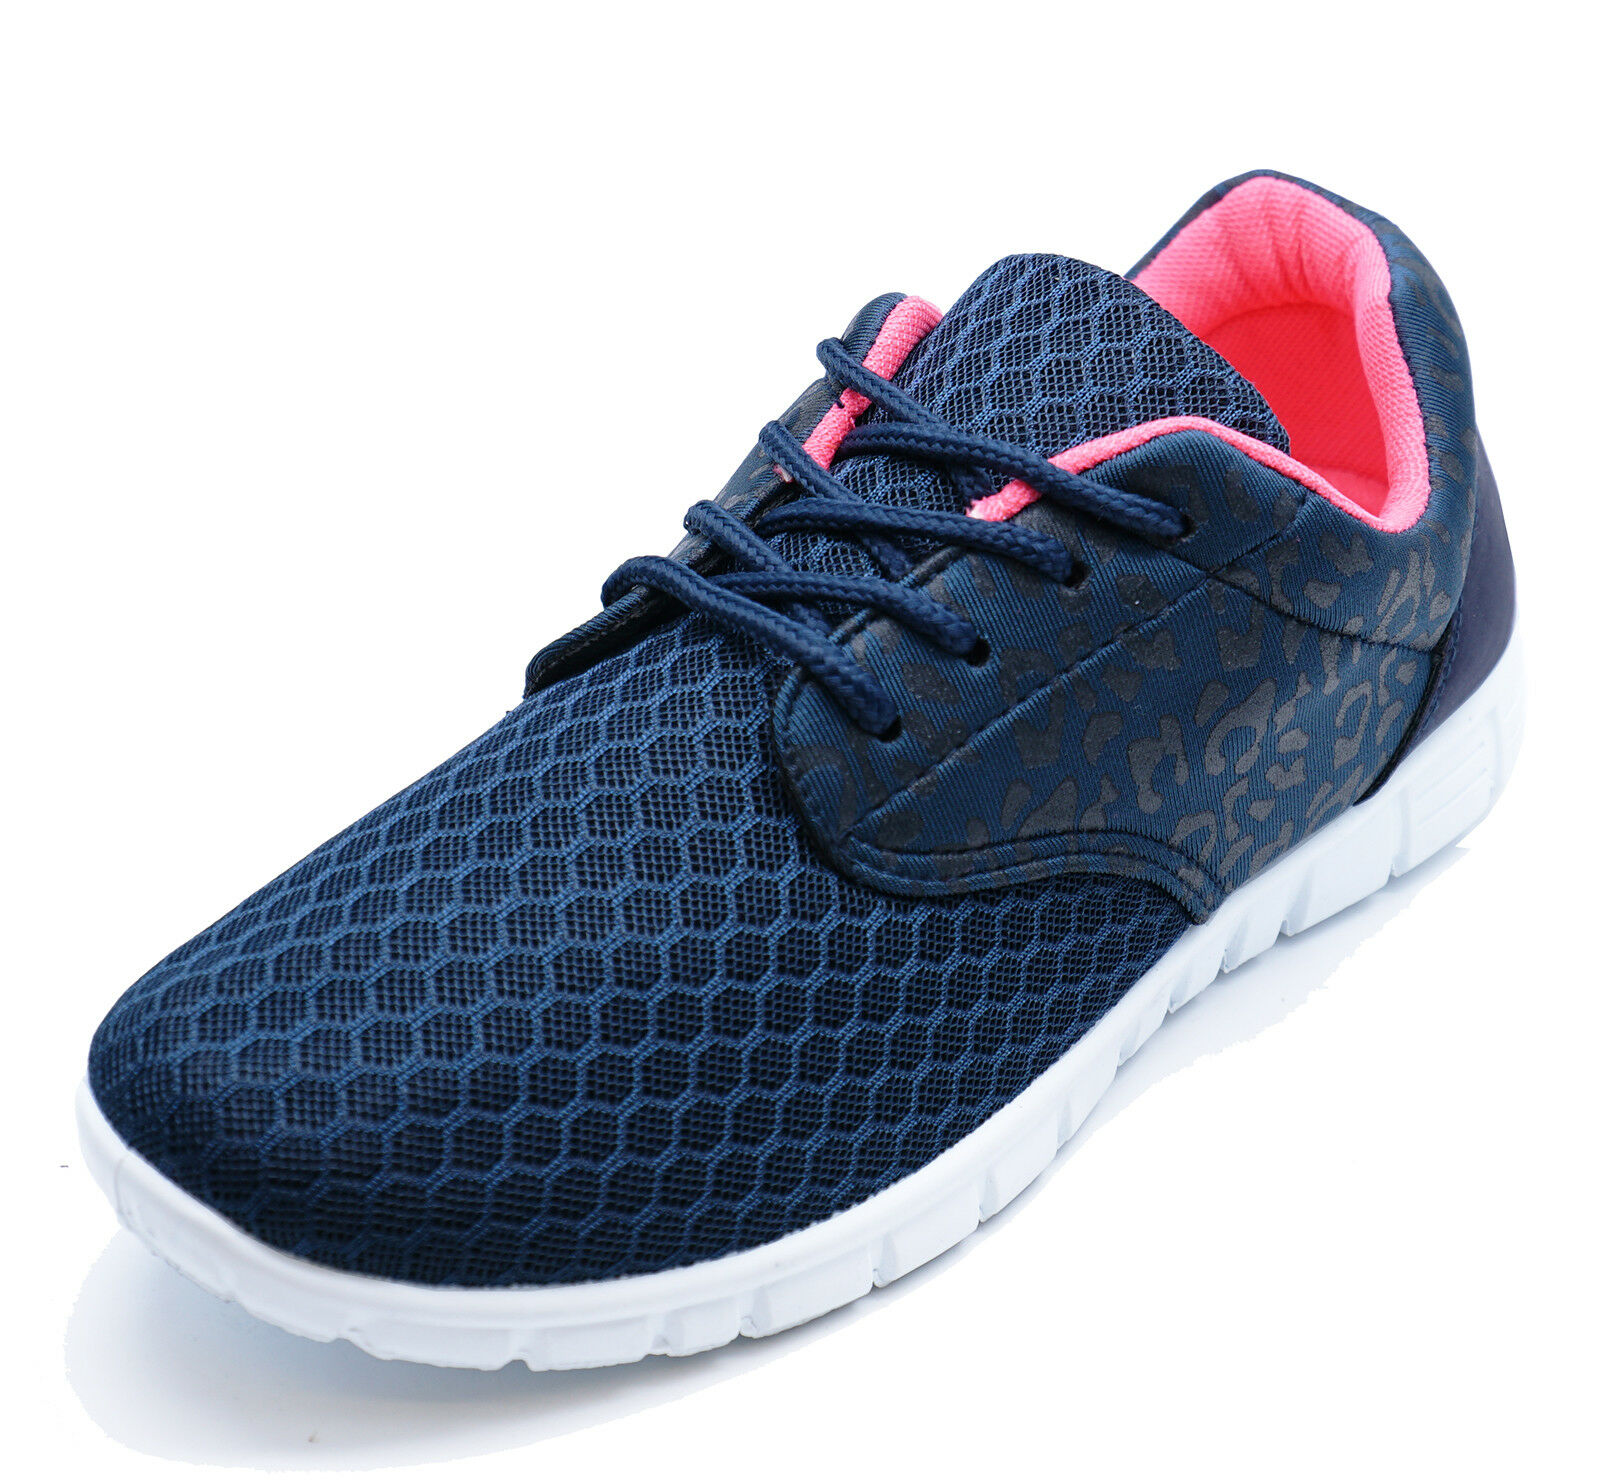 Womens Ladies Girls Navy Blue Pink Sports Gym Running Trainers Shoes Size 3-8